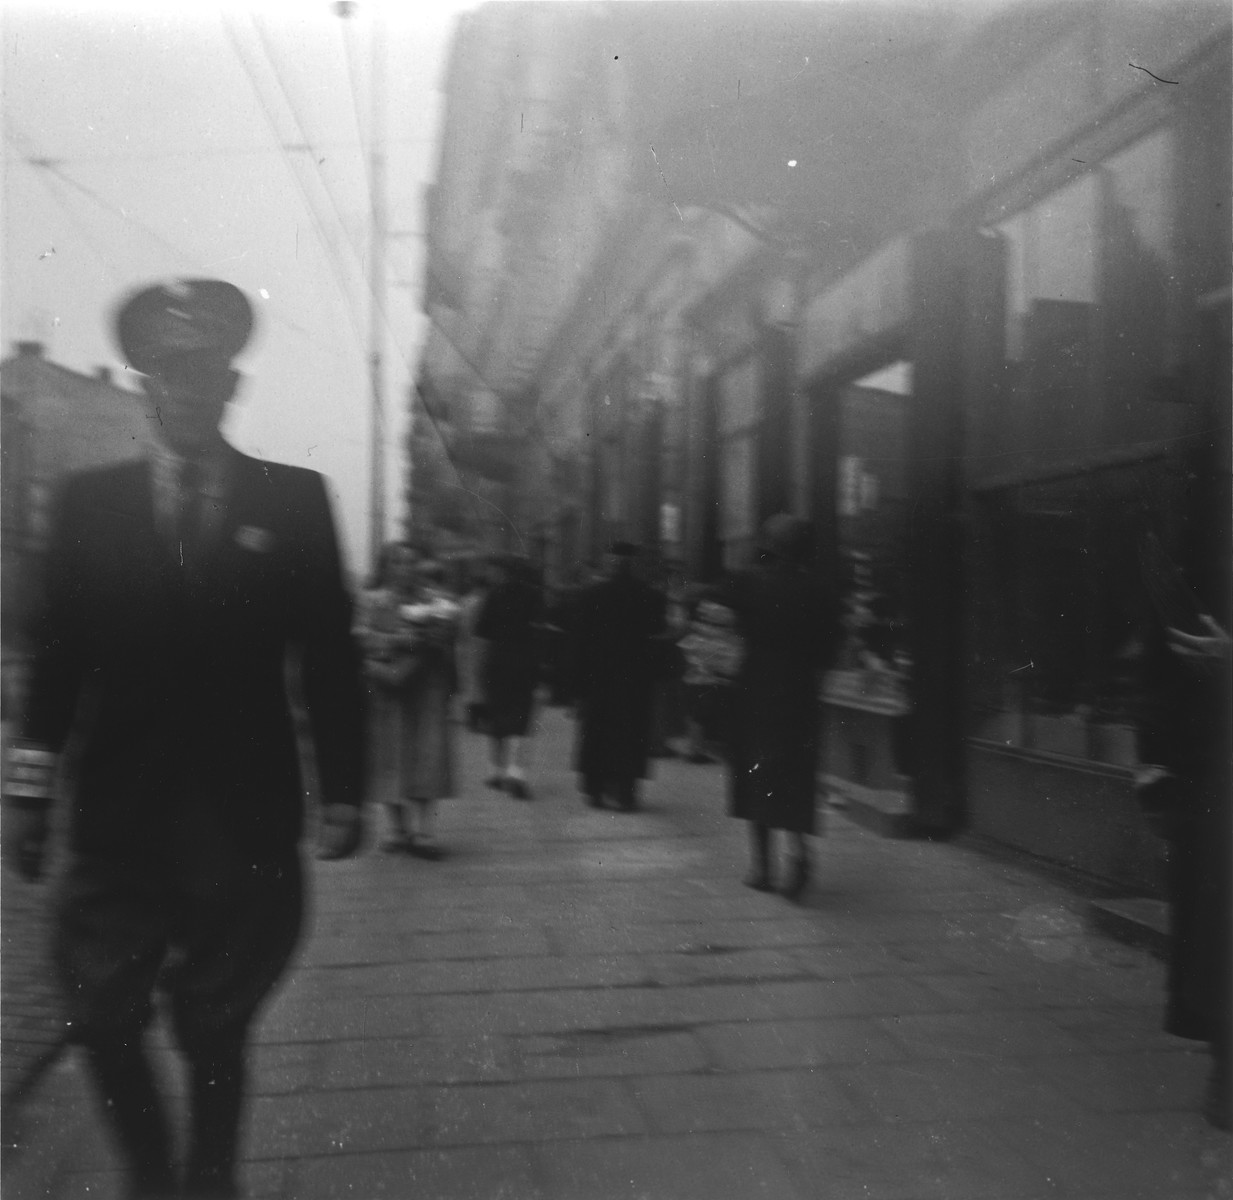 """A Jewish policeman walks down the street in the Warsaw ghetto.  Joest's original caption reads: """"That was a man from the Jewish police.  Most of the people avoided him just as they did the German soldiers, although the policemen only had rubber clubs and the soldiers had guns.  On this day, however, I heard no shots."""""""